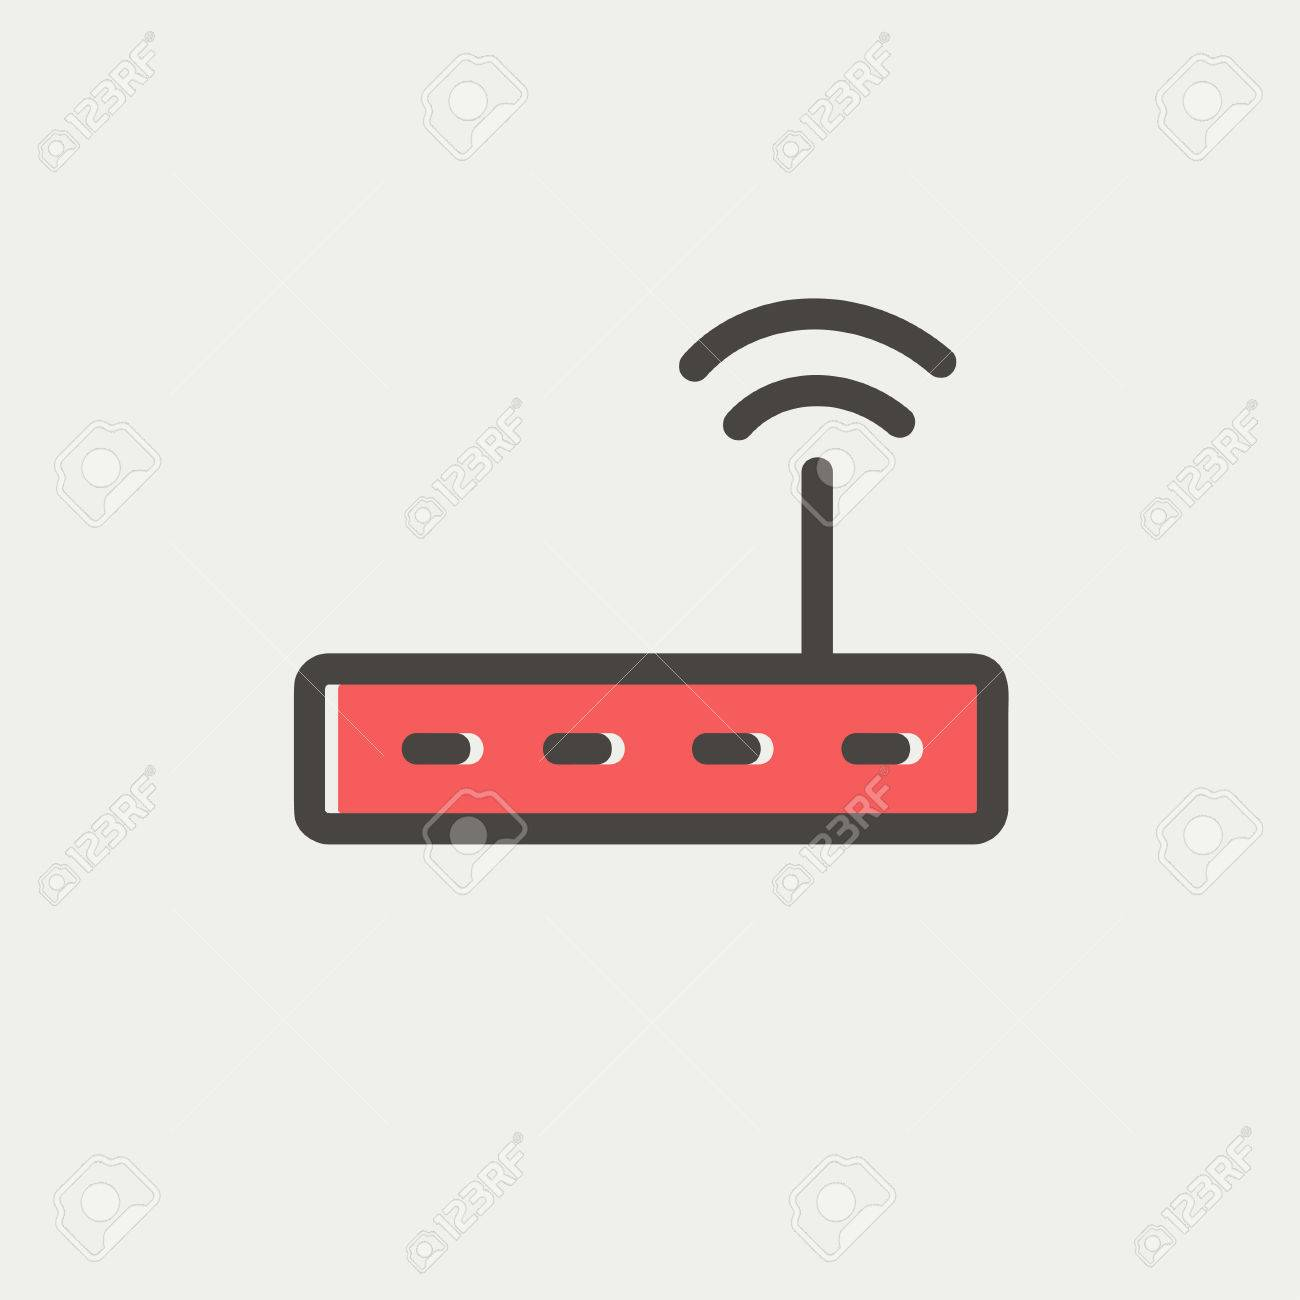 Wifi router modem icon thin line for web and mobile, modern minimalistic